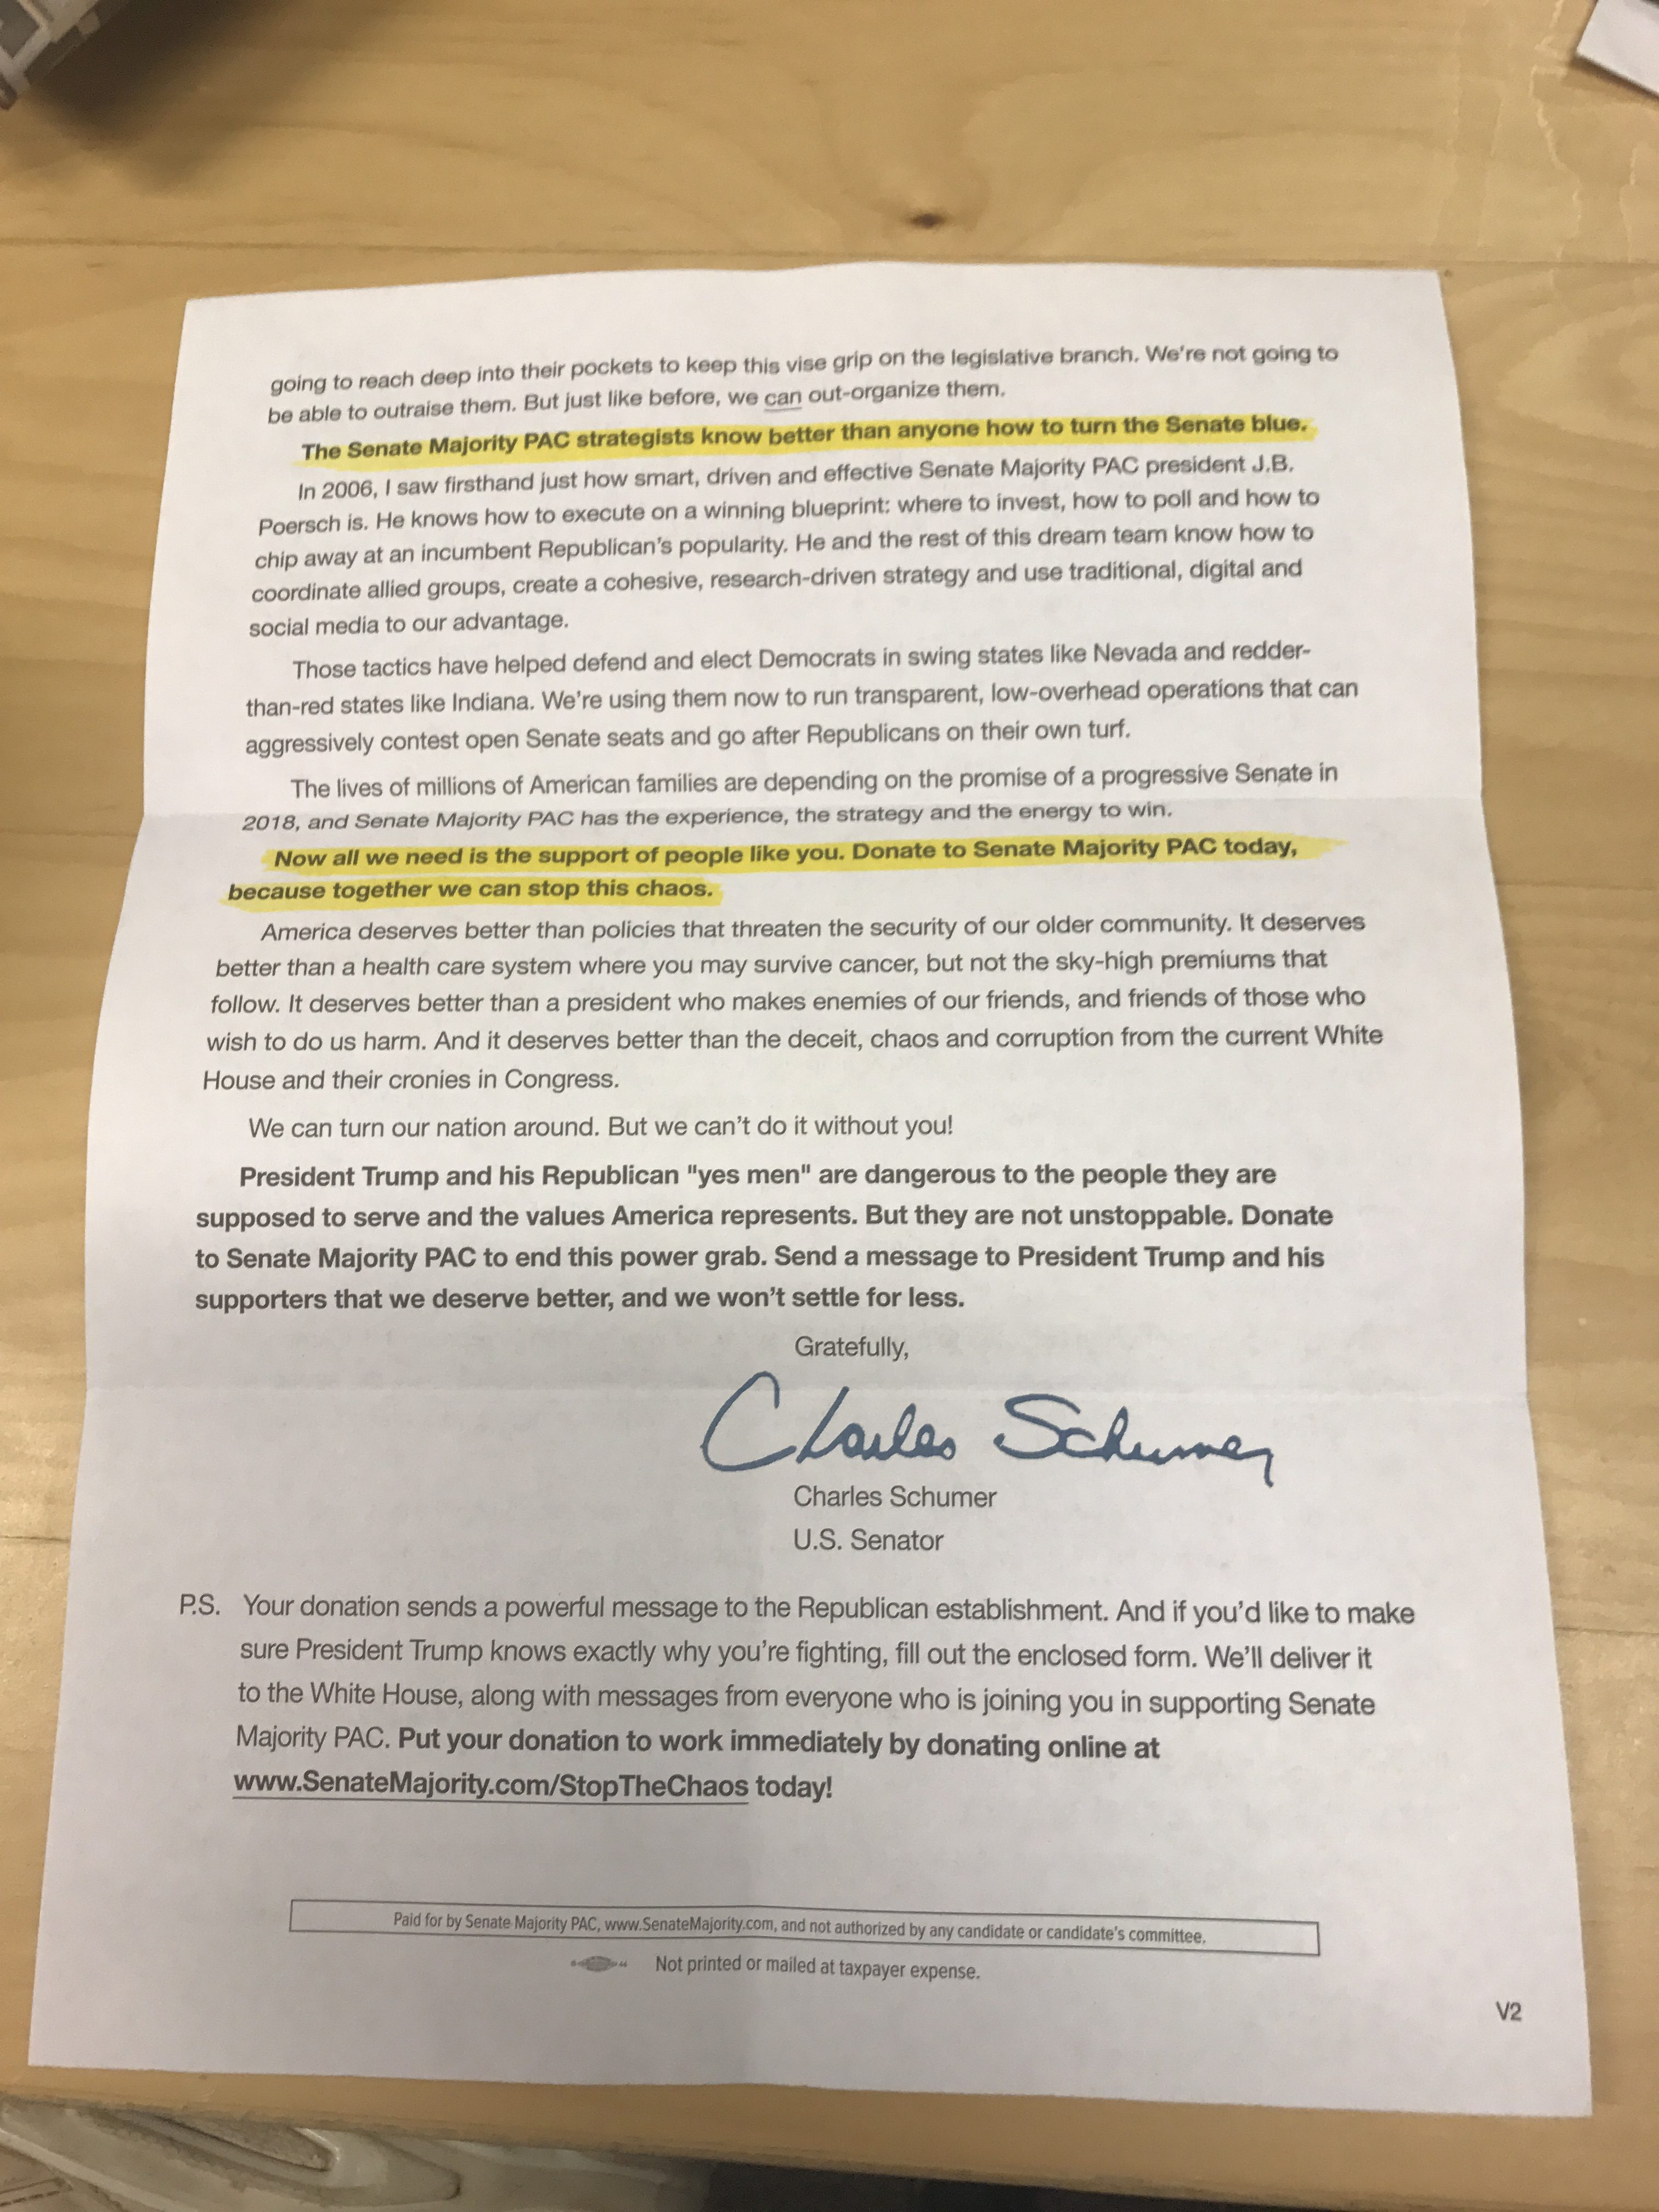 Senate Majority PAC fundraising letter (photo by Daily Caller)